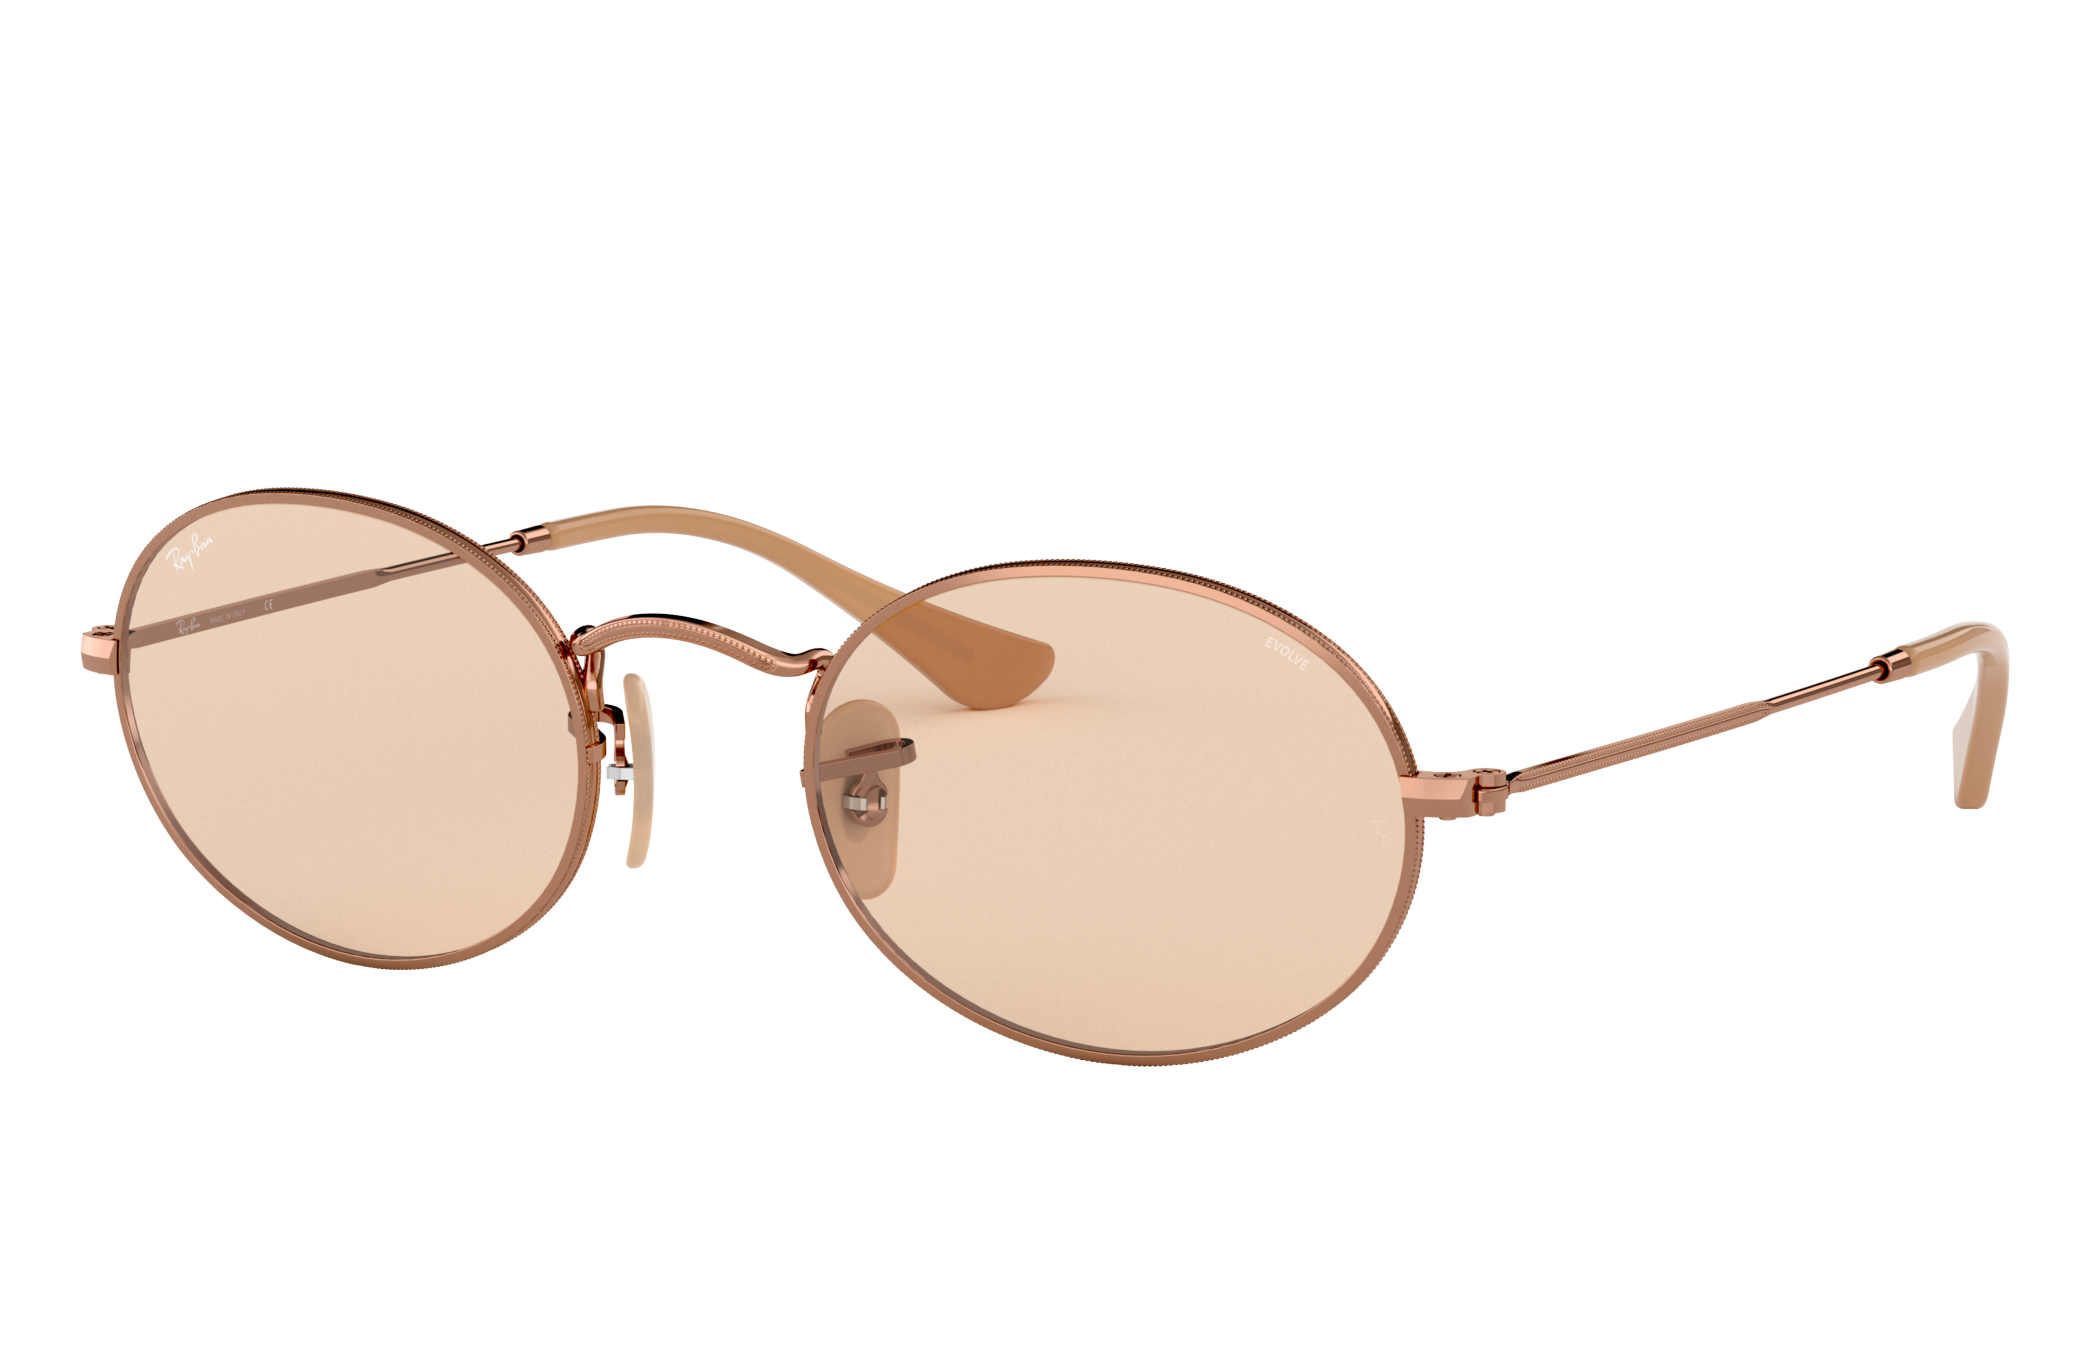 Ray-Ban Oval Washed Evolve Bronze-Copper, Brown Lenses - RB3547N